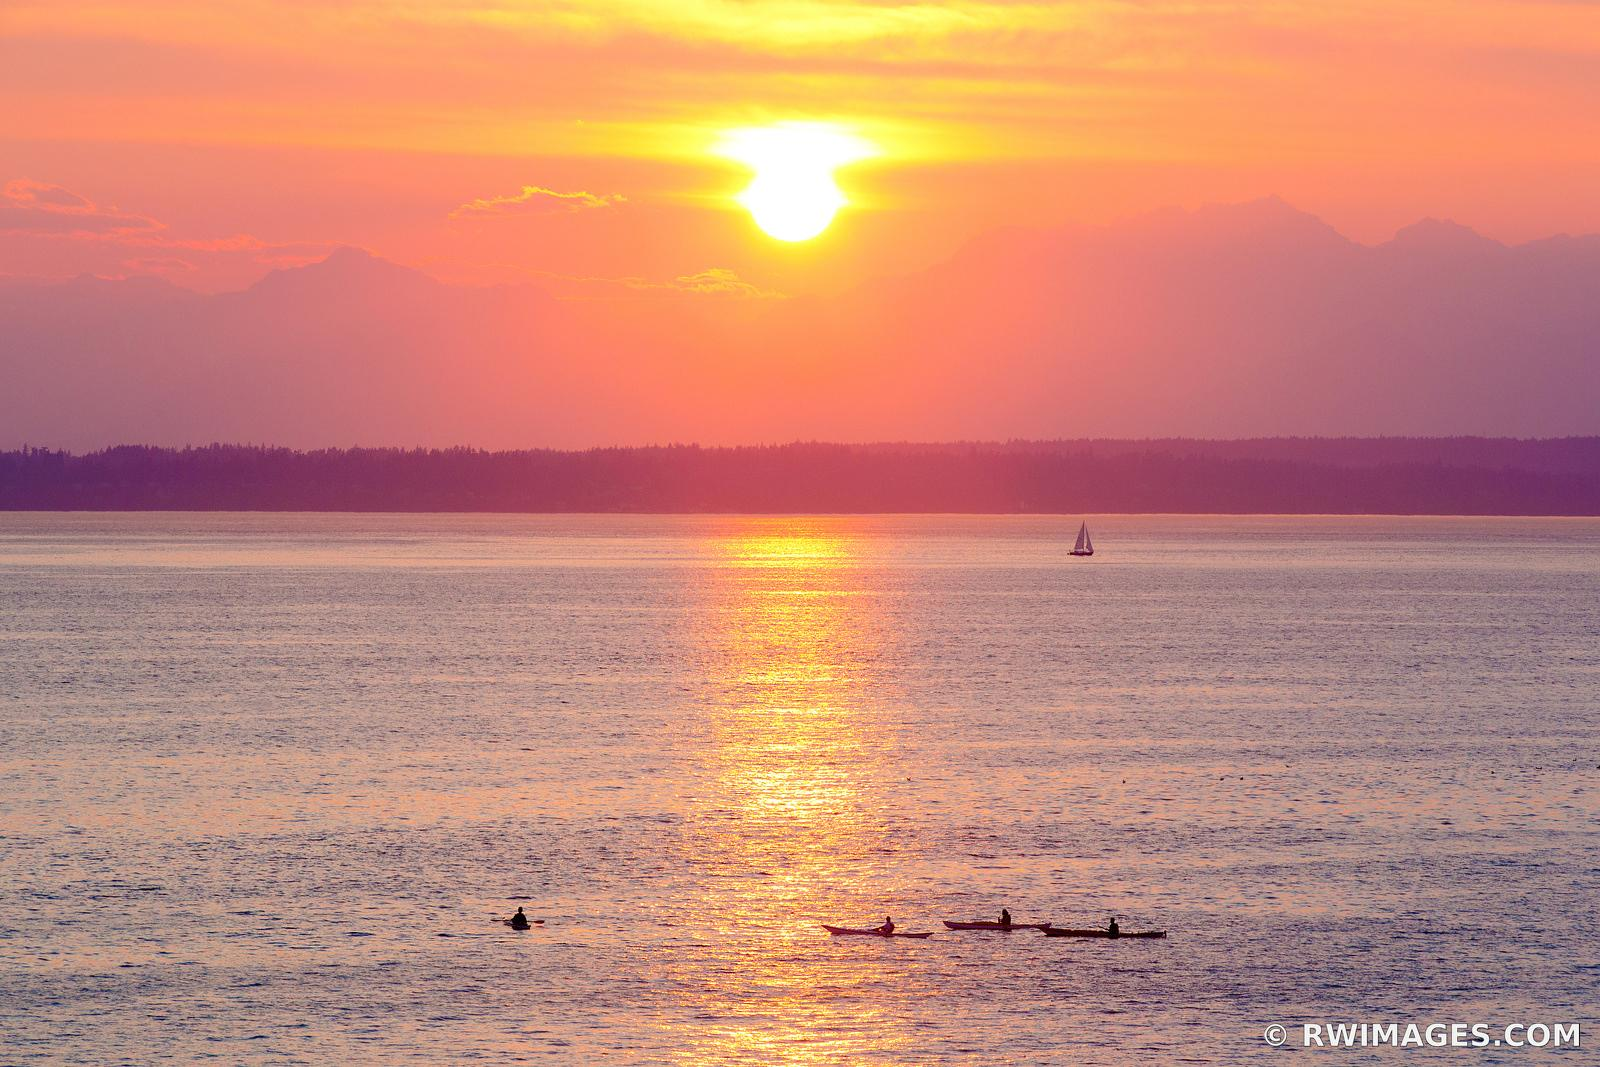 SEA KAYAKERS IN PUGET SOUND AT SUNSET SEATTLE WASHINGTON